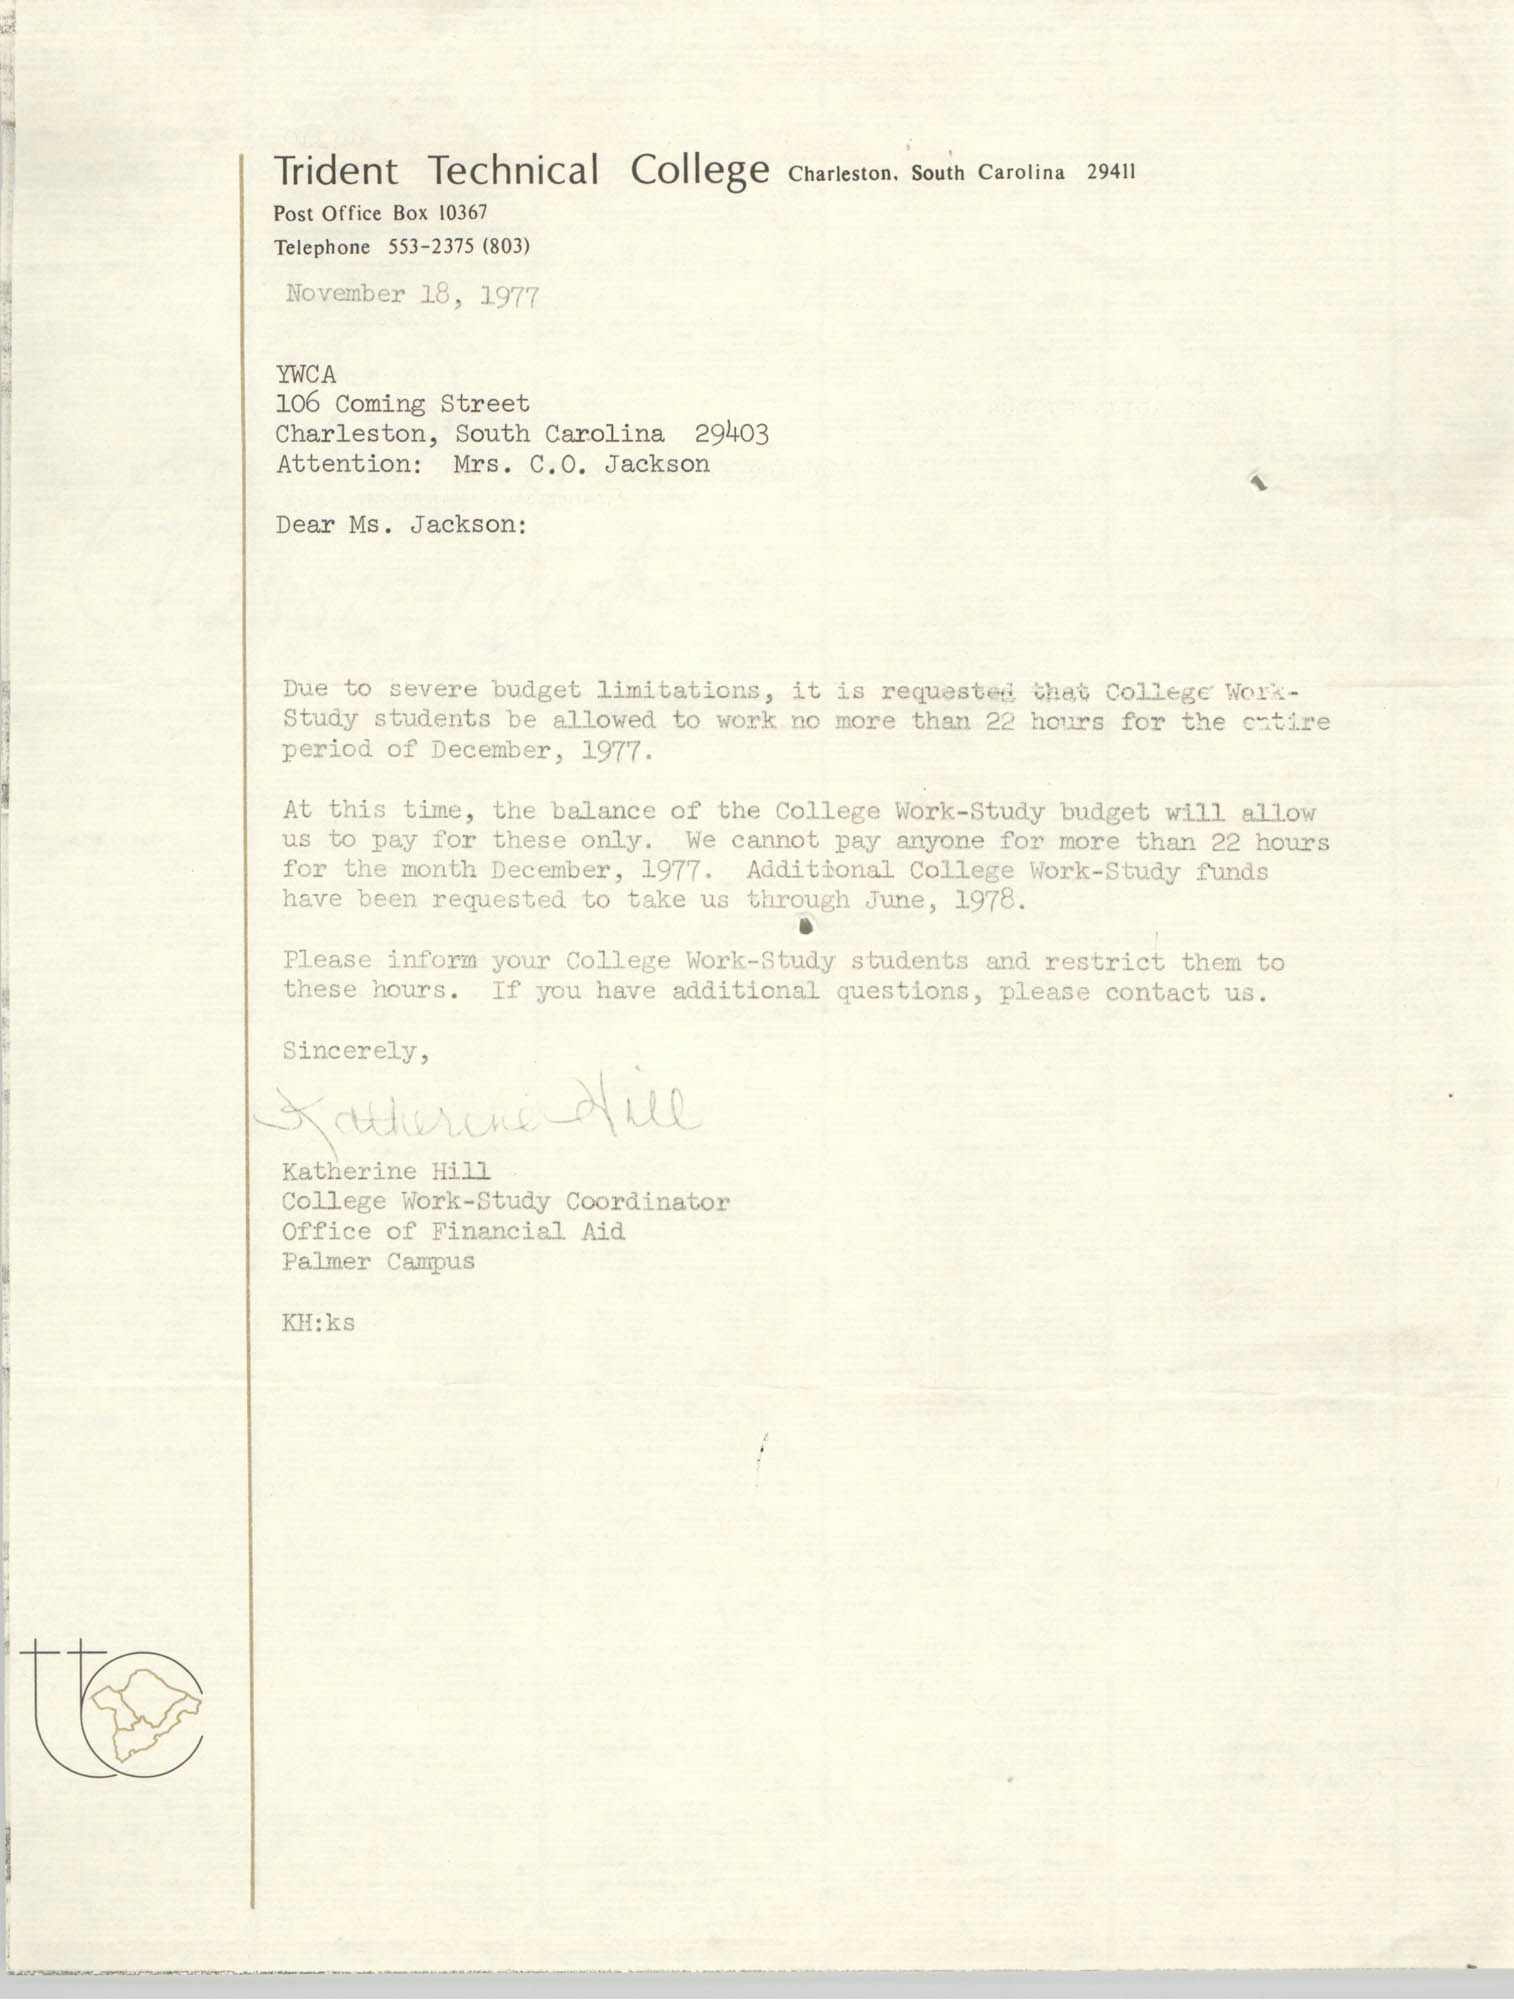 Letter from Katherine Hill to Christine O. Jackson, November 18, 1977